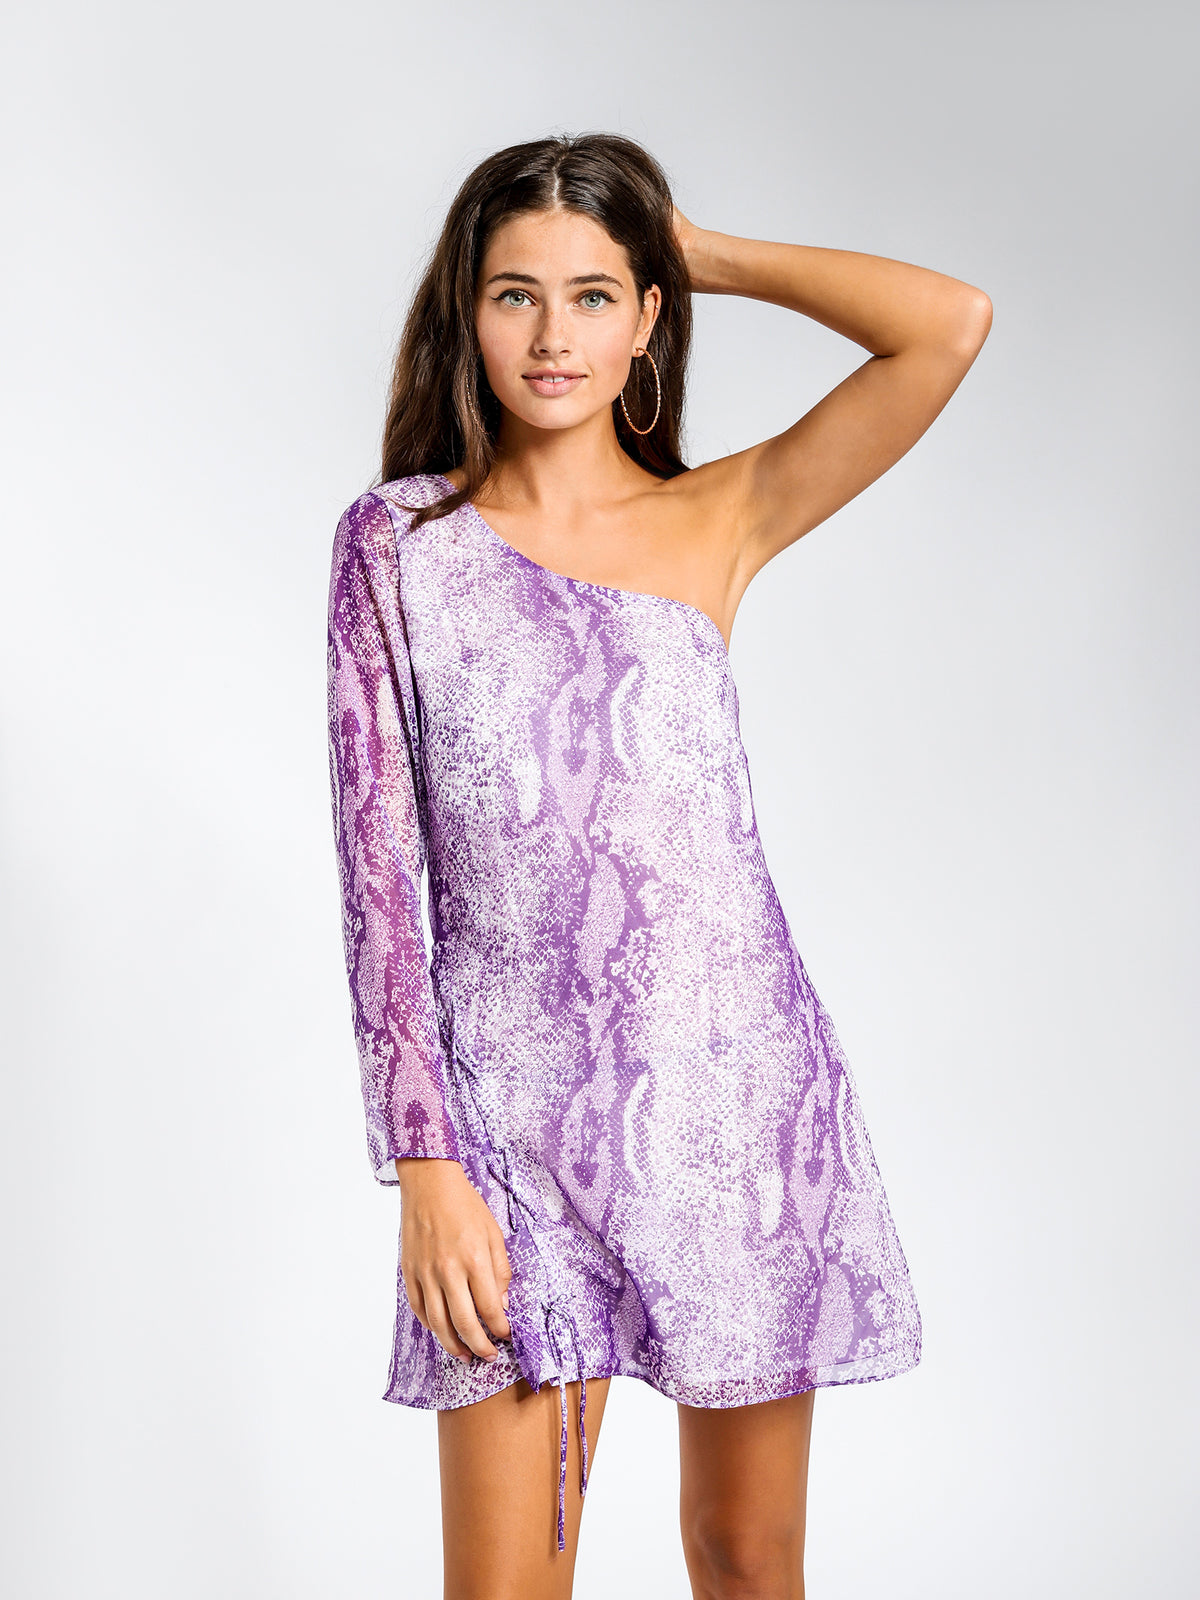 Edi One-Shoulder Mini Dress in Purple Poison Snake Print